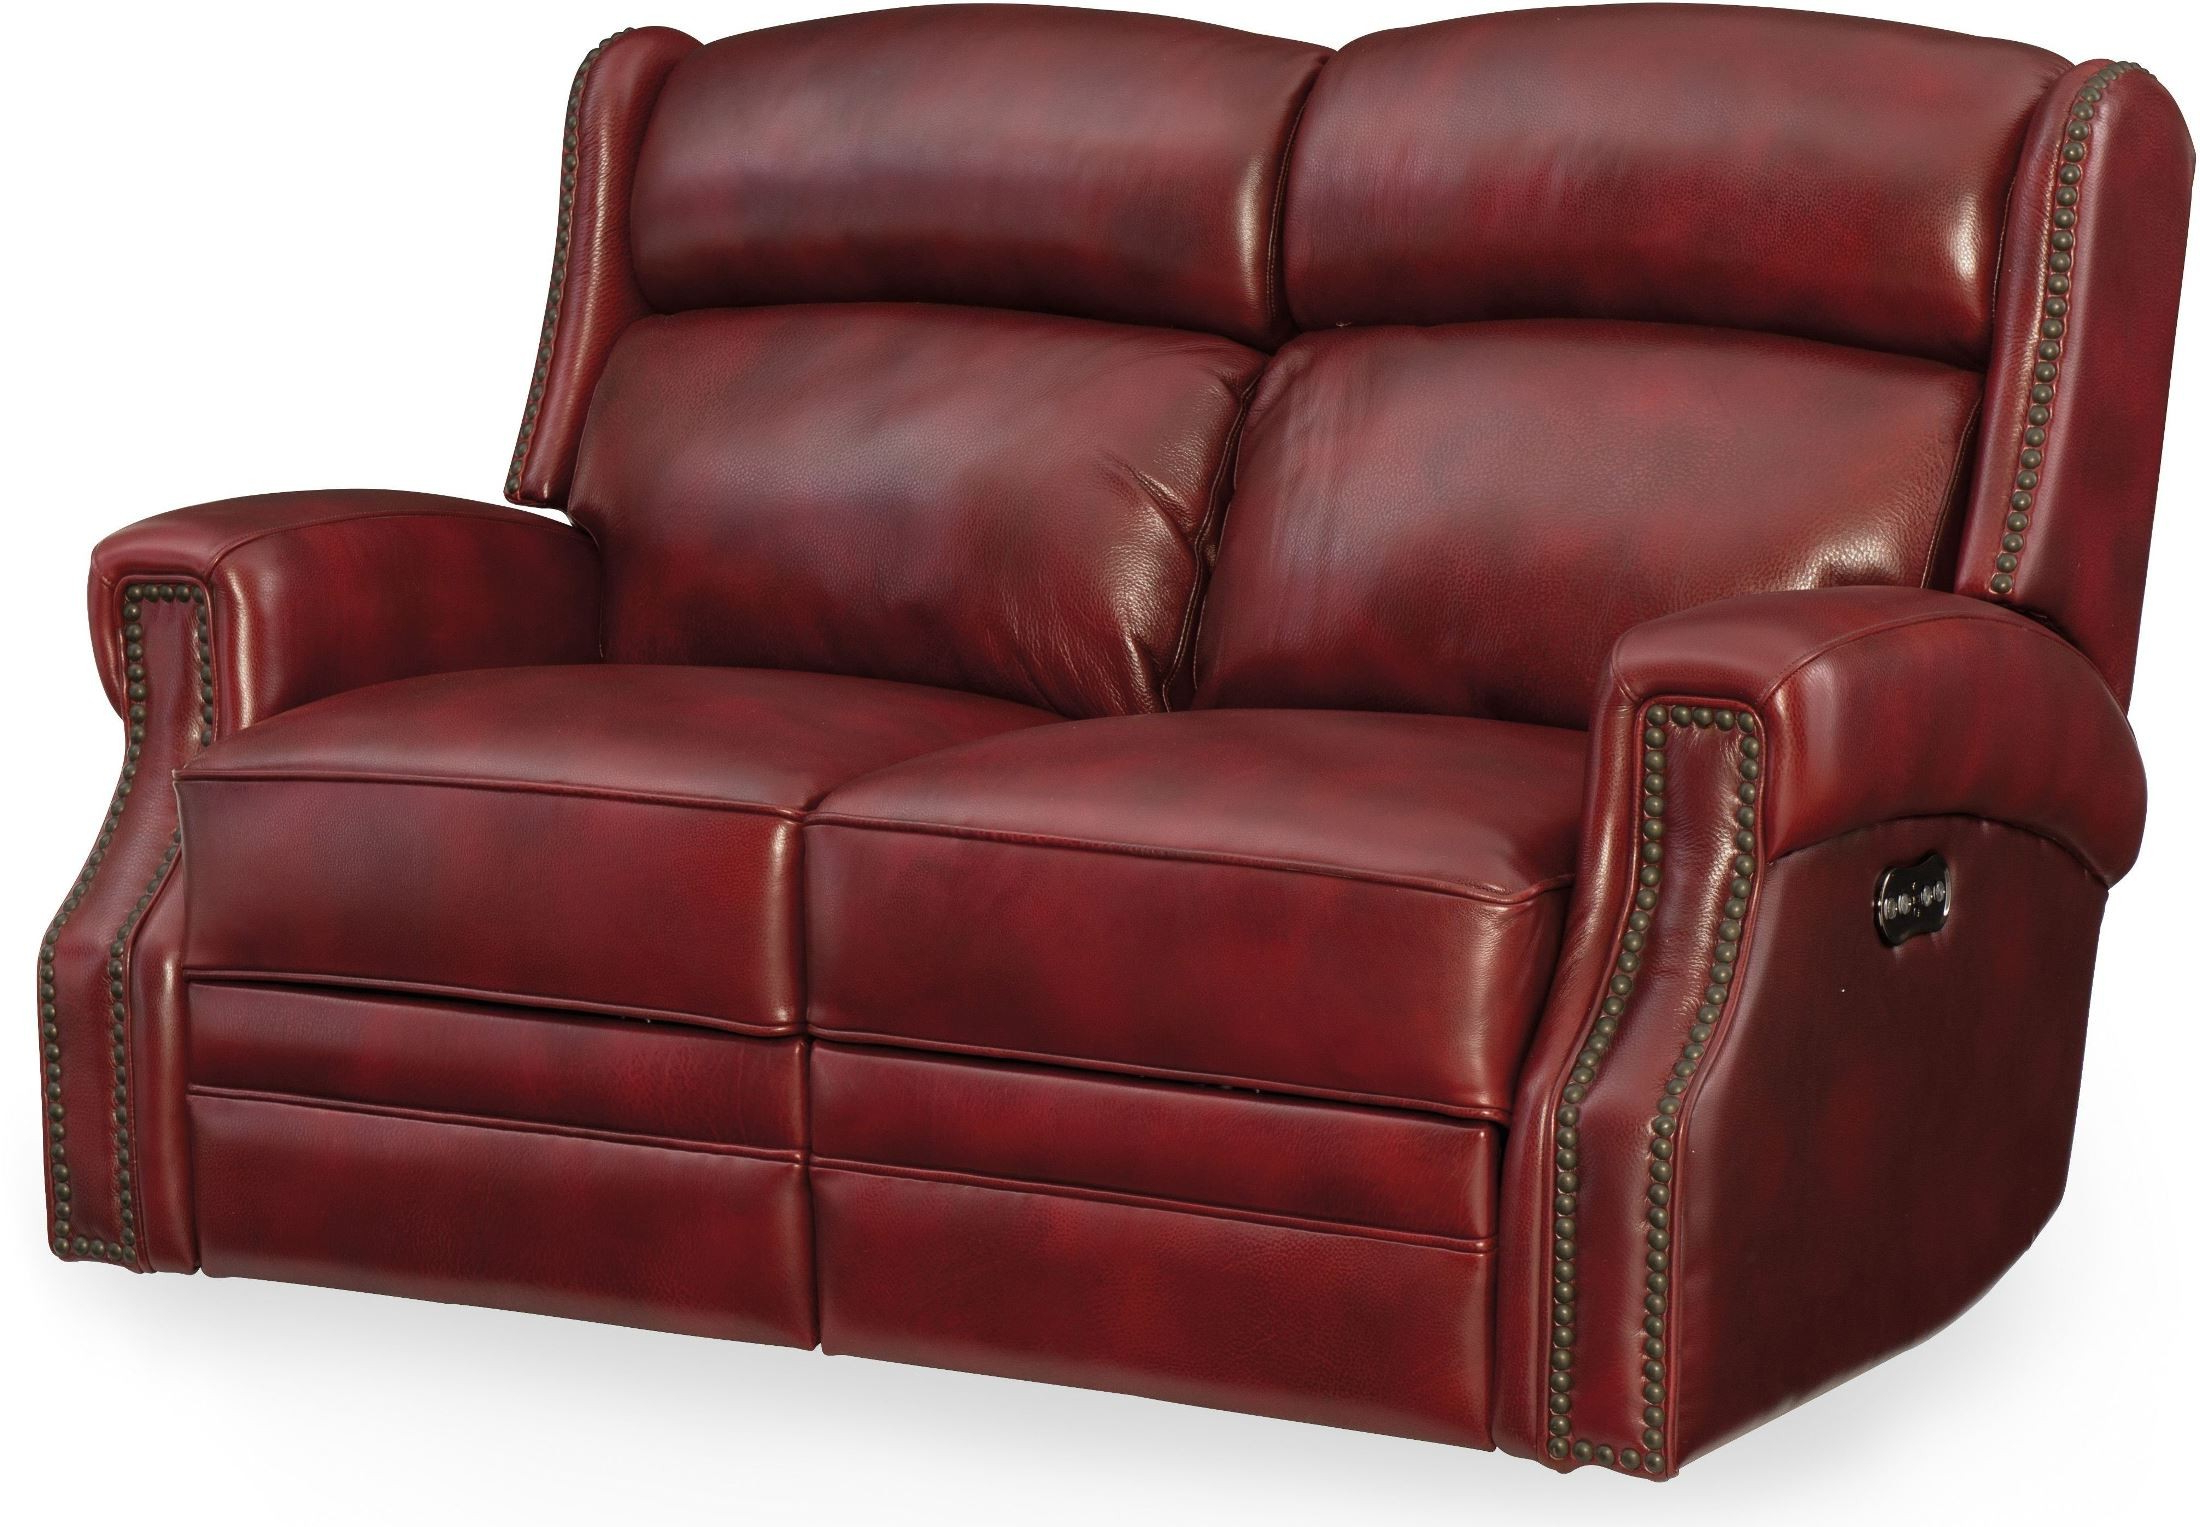 Nolan Leather Power Reclining Sofas Pertaining To Current Carlisle Red Leather Power Reclining Loveseat With Power (View 1 of 15)